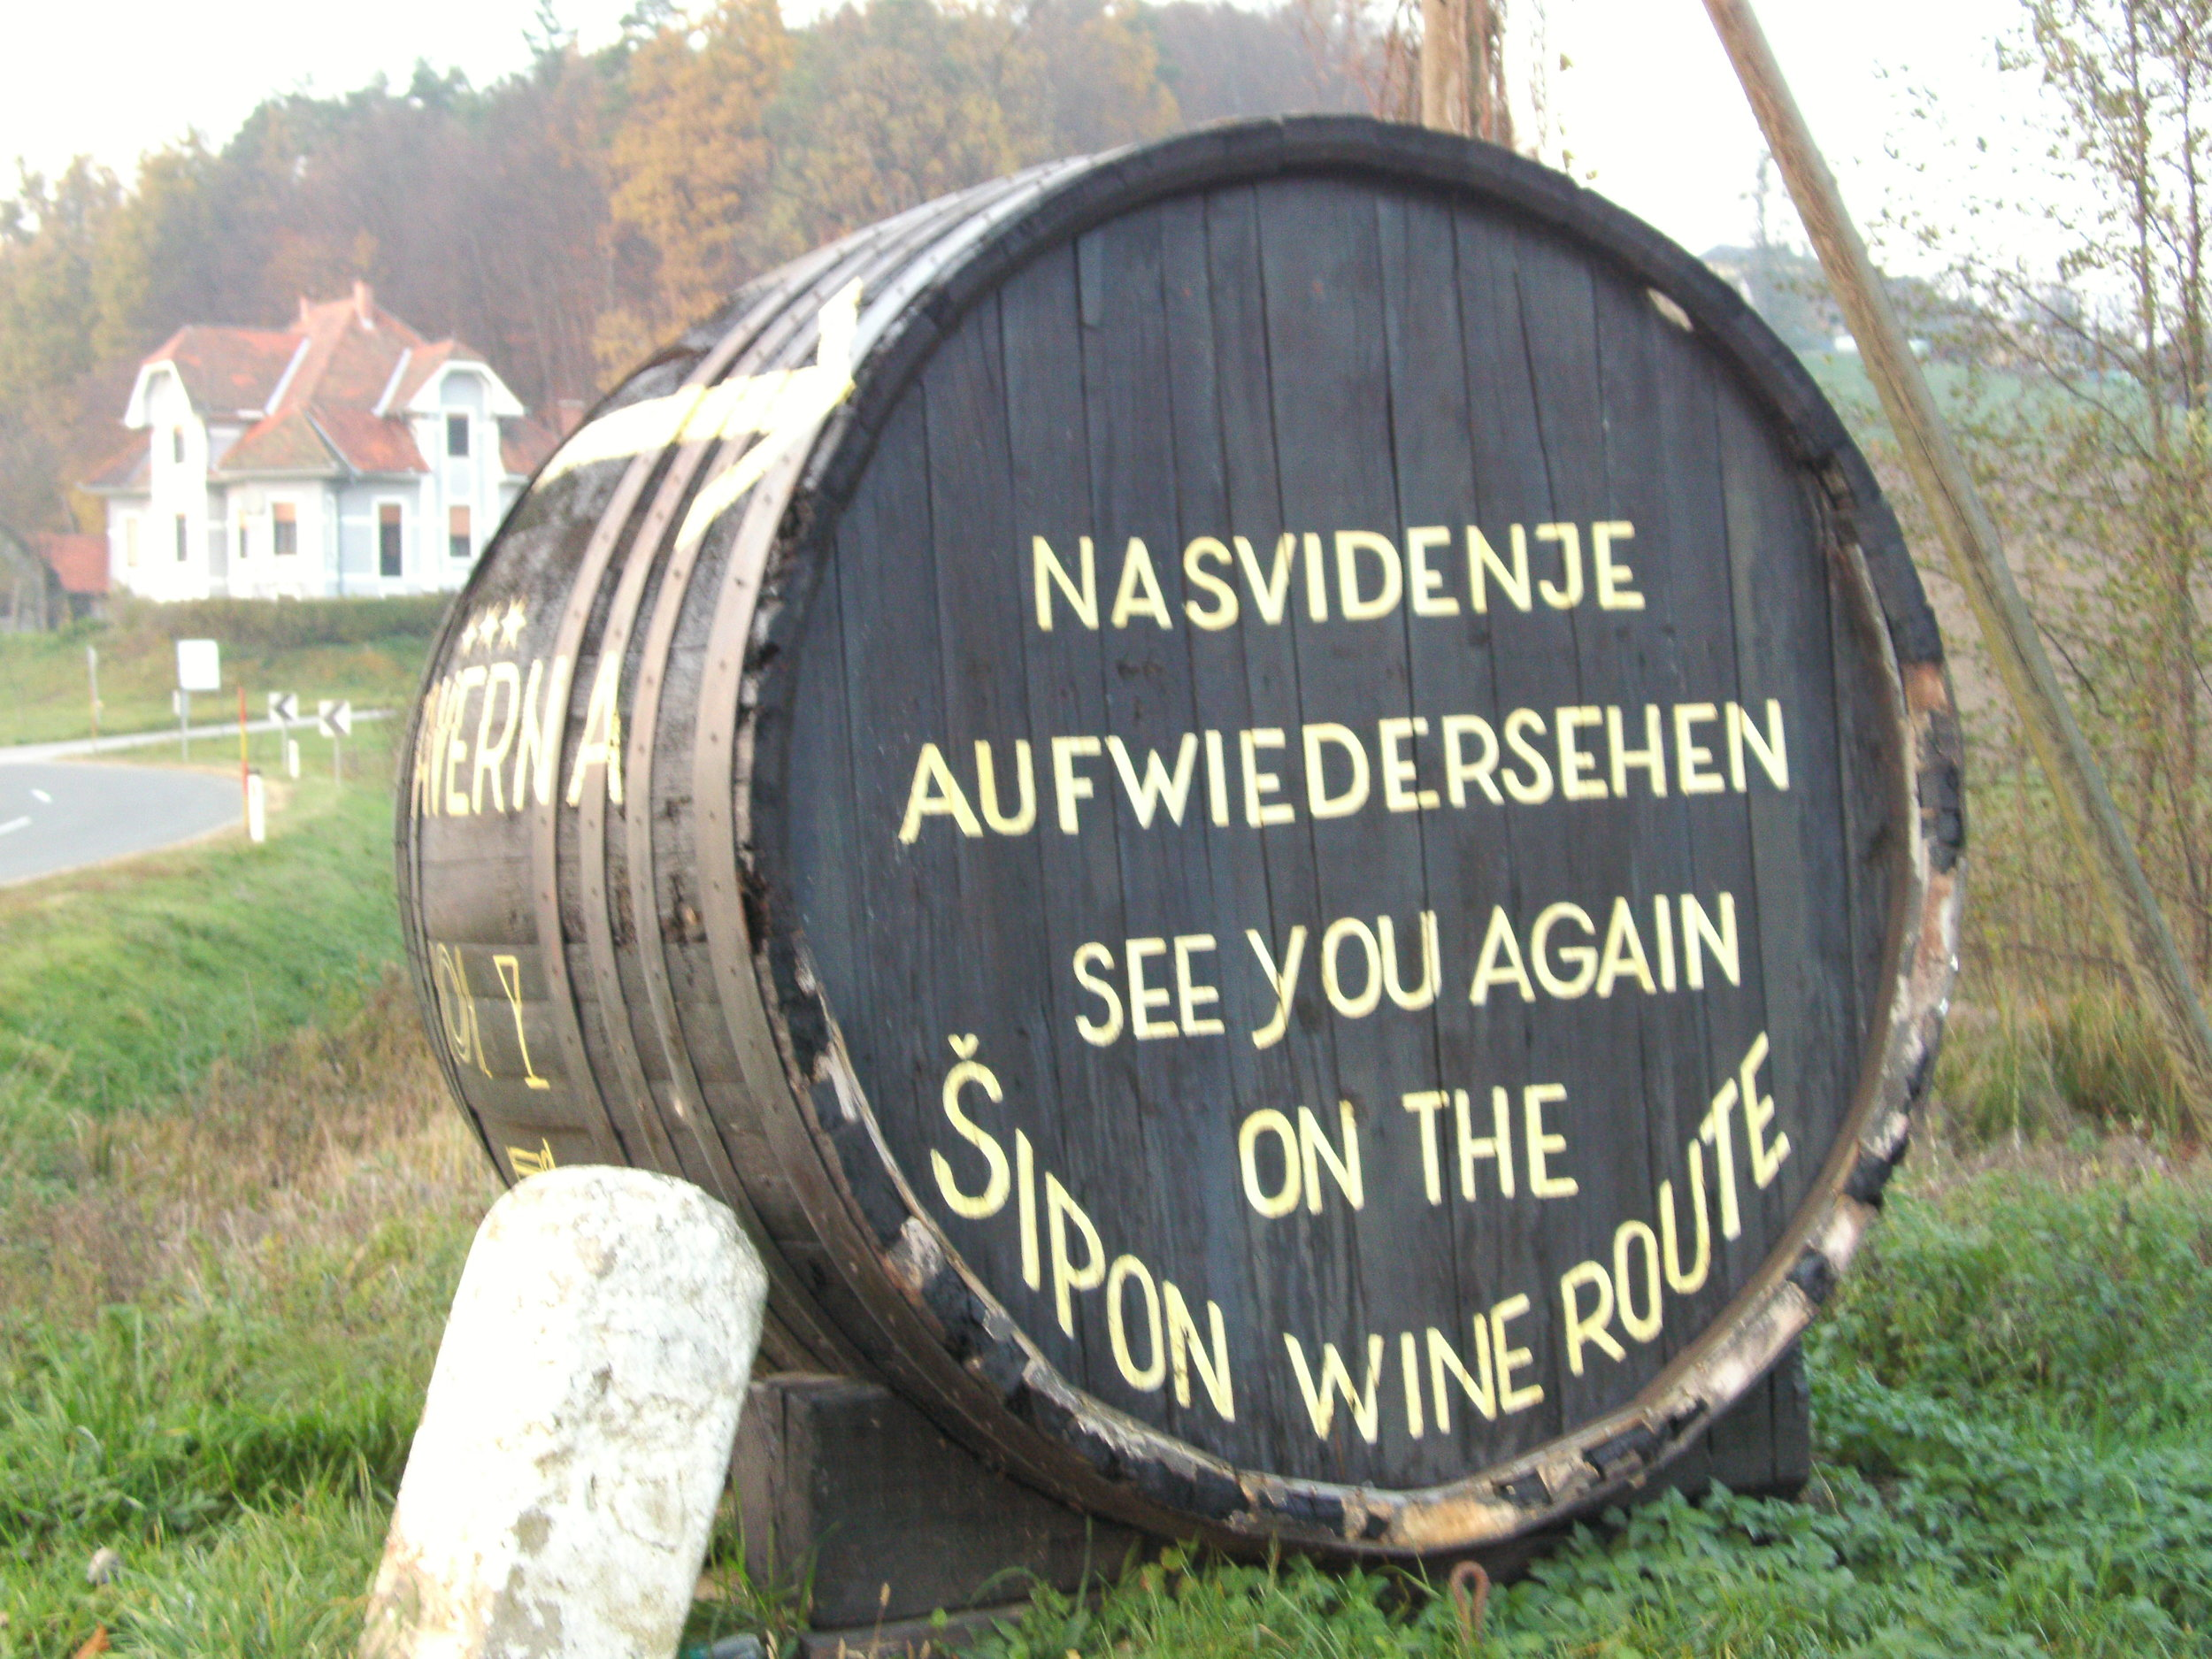 The words on the barrel say 'See you again on the Šipon Wine Route.'